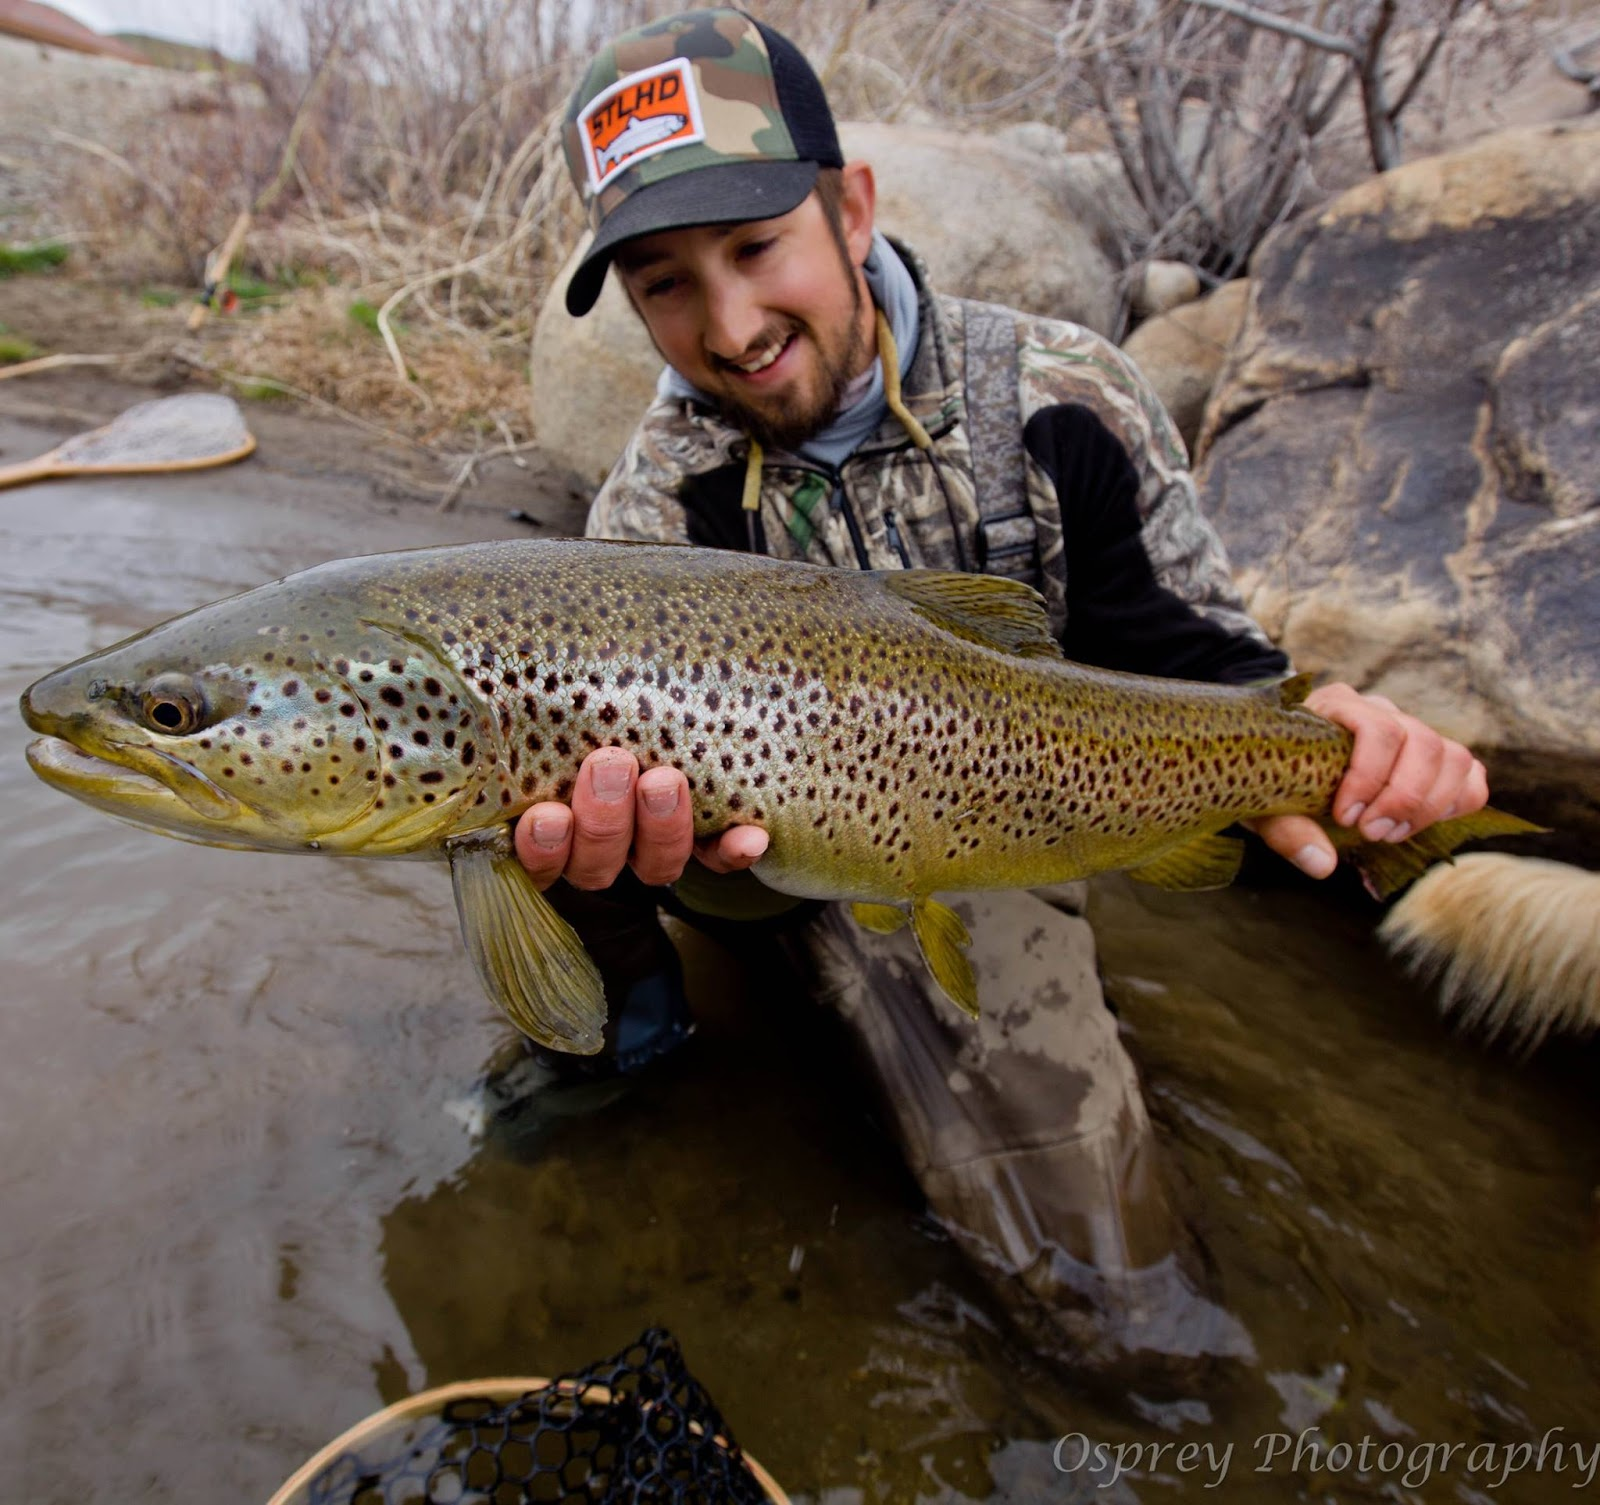 Jon baiocchi fly fishing news openings for tours for Jon b fishing